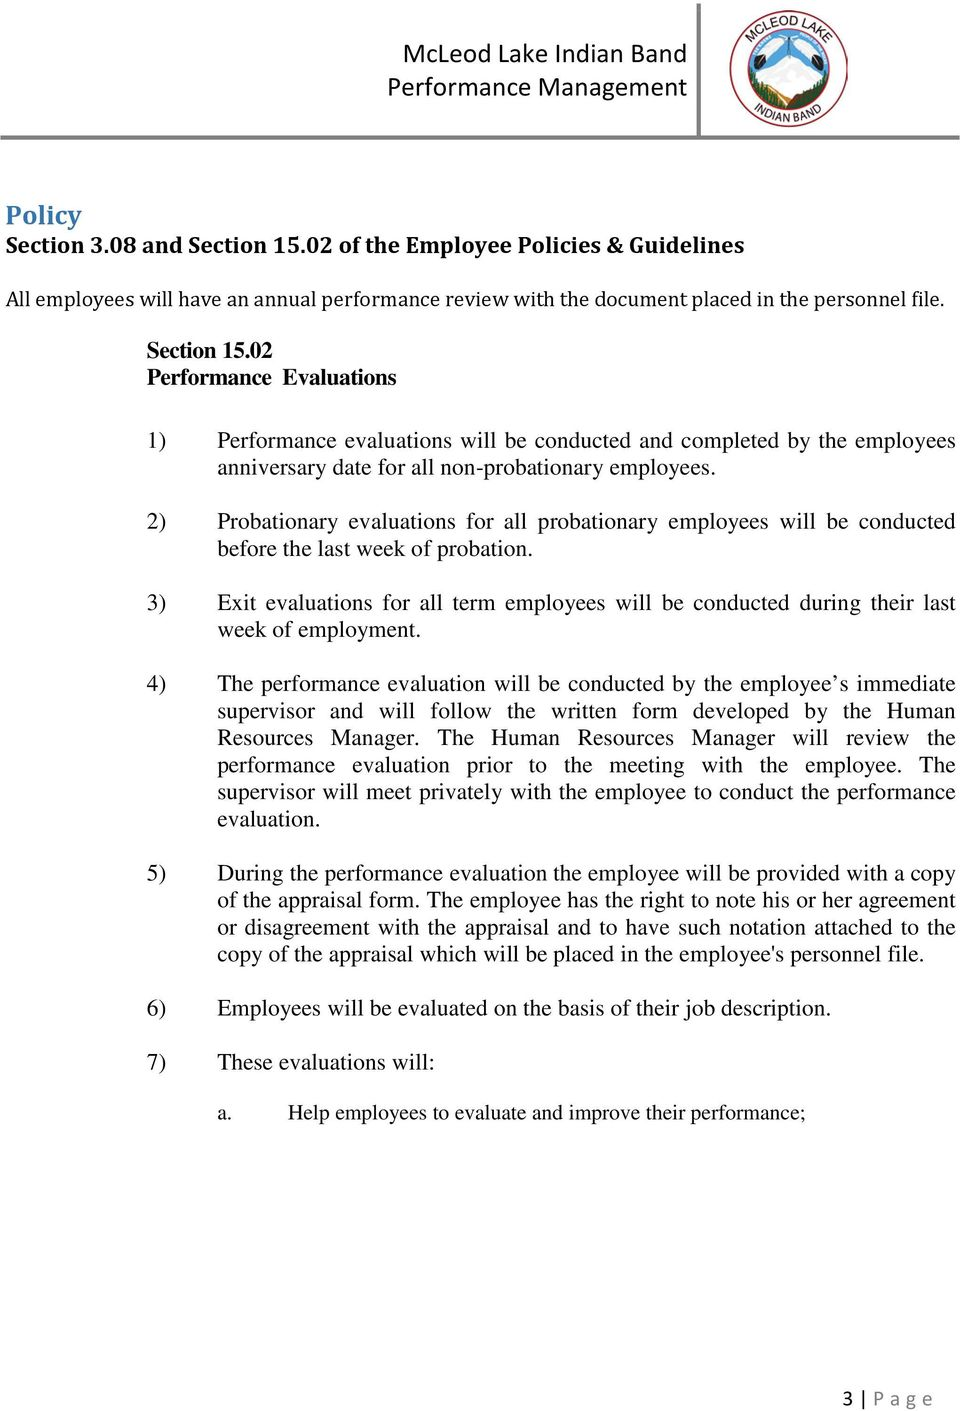 3) Exit evaluations for all term employees will be conducted during their last week of employment.